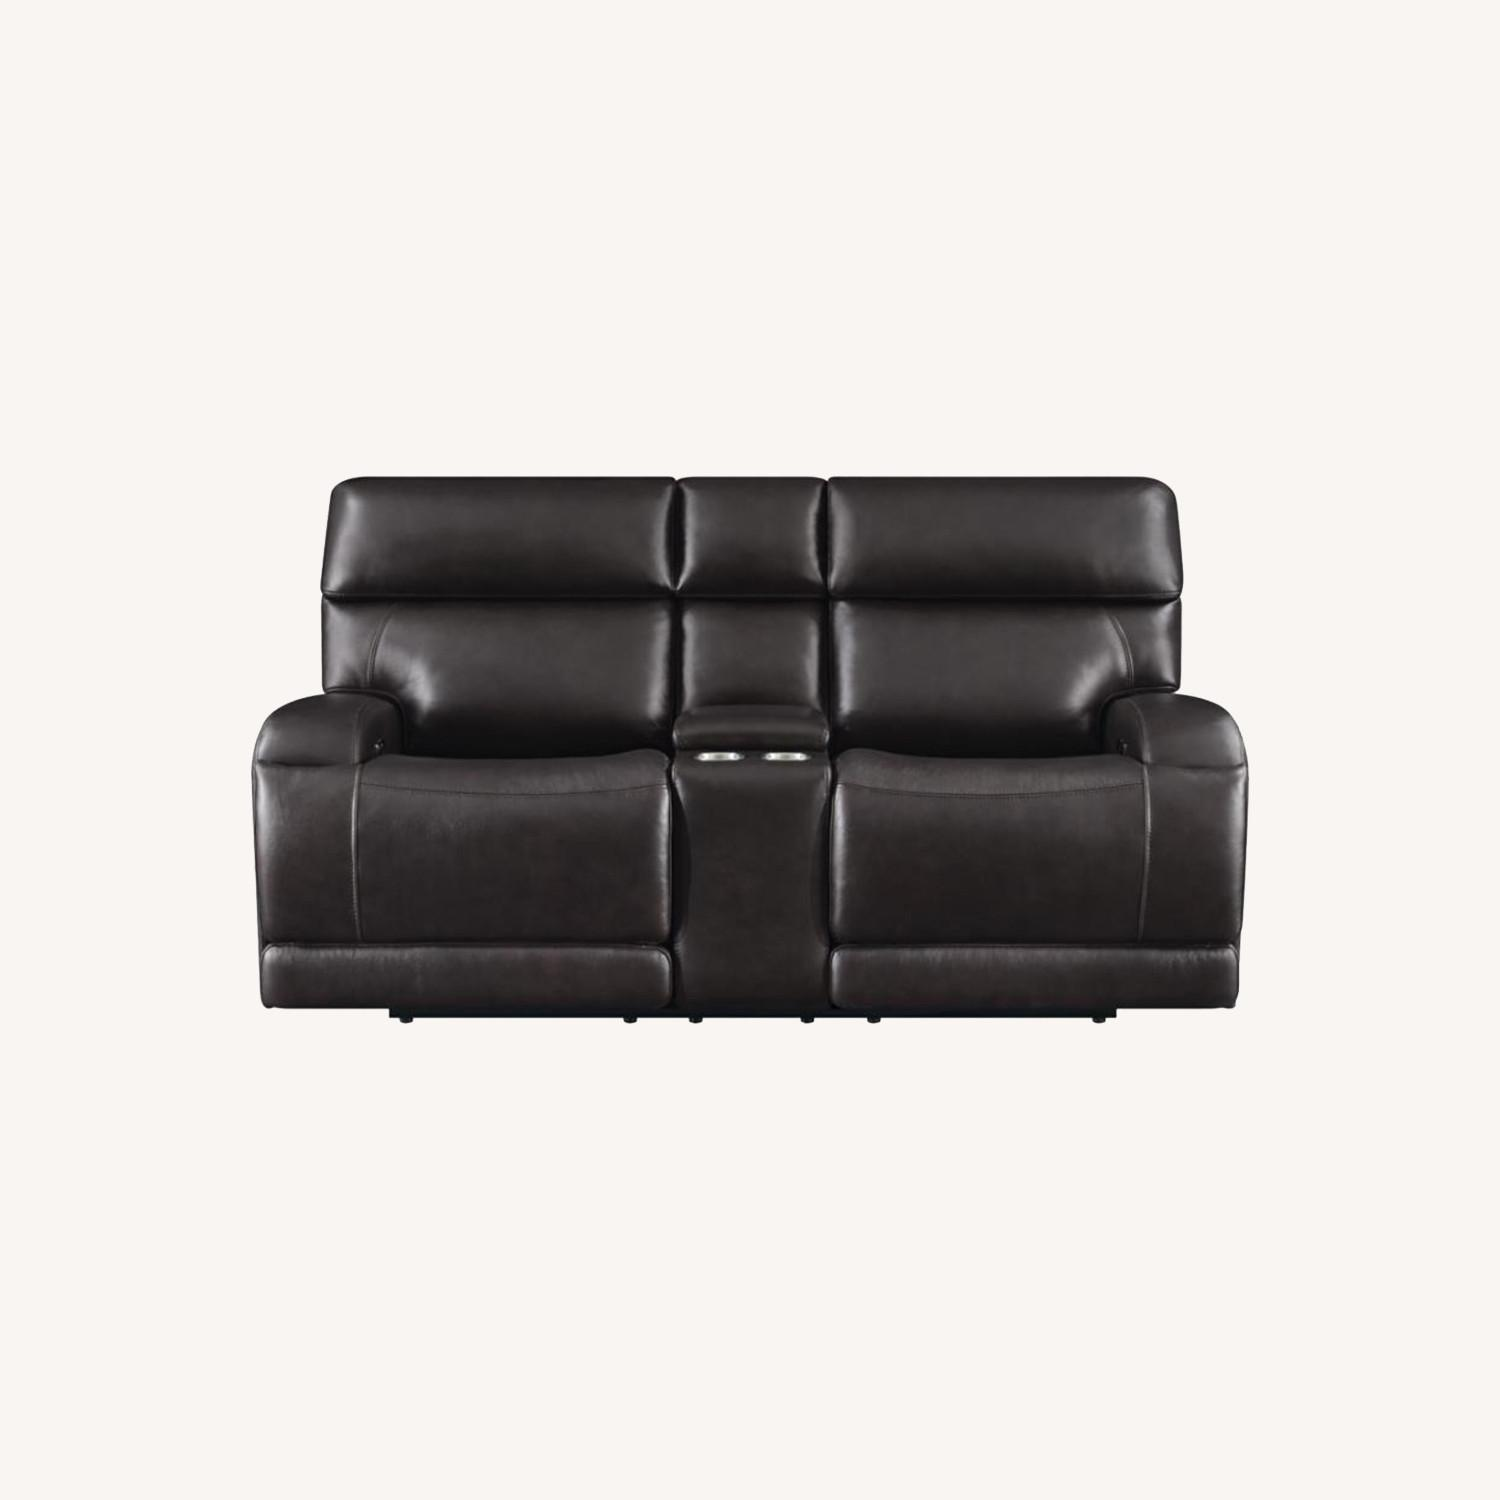 Power Loveseat W/ Console In Dark Brown Leather - image-12